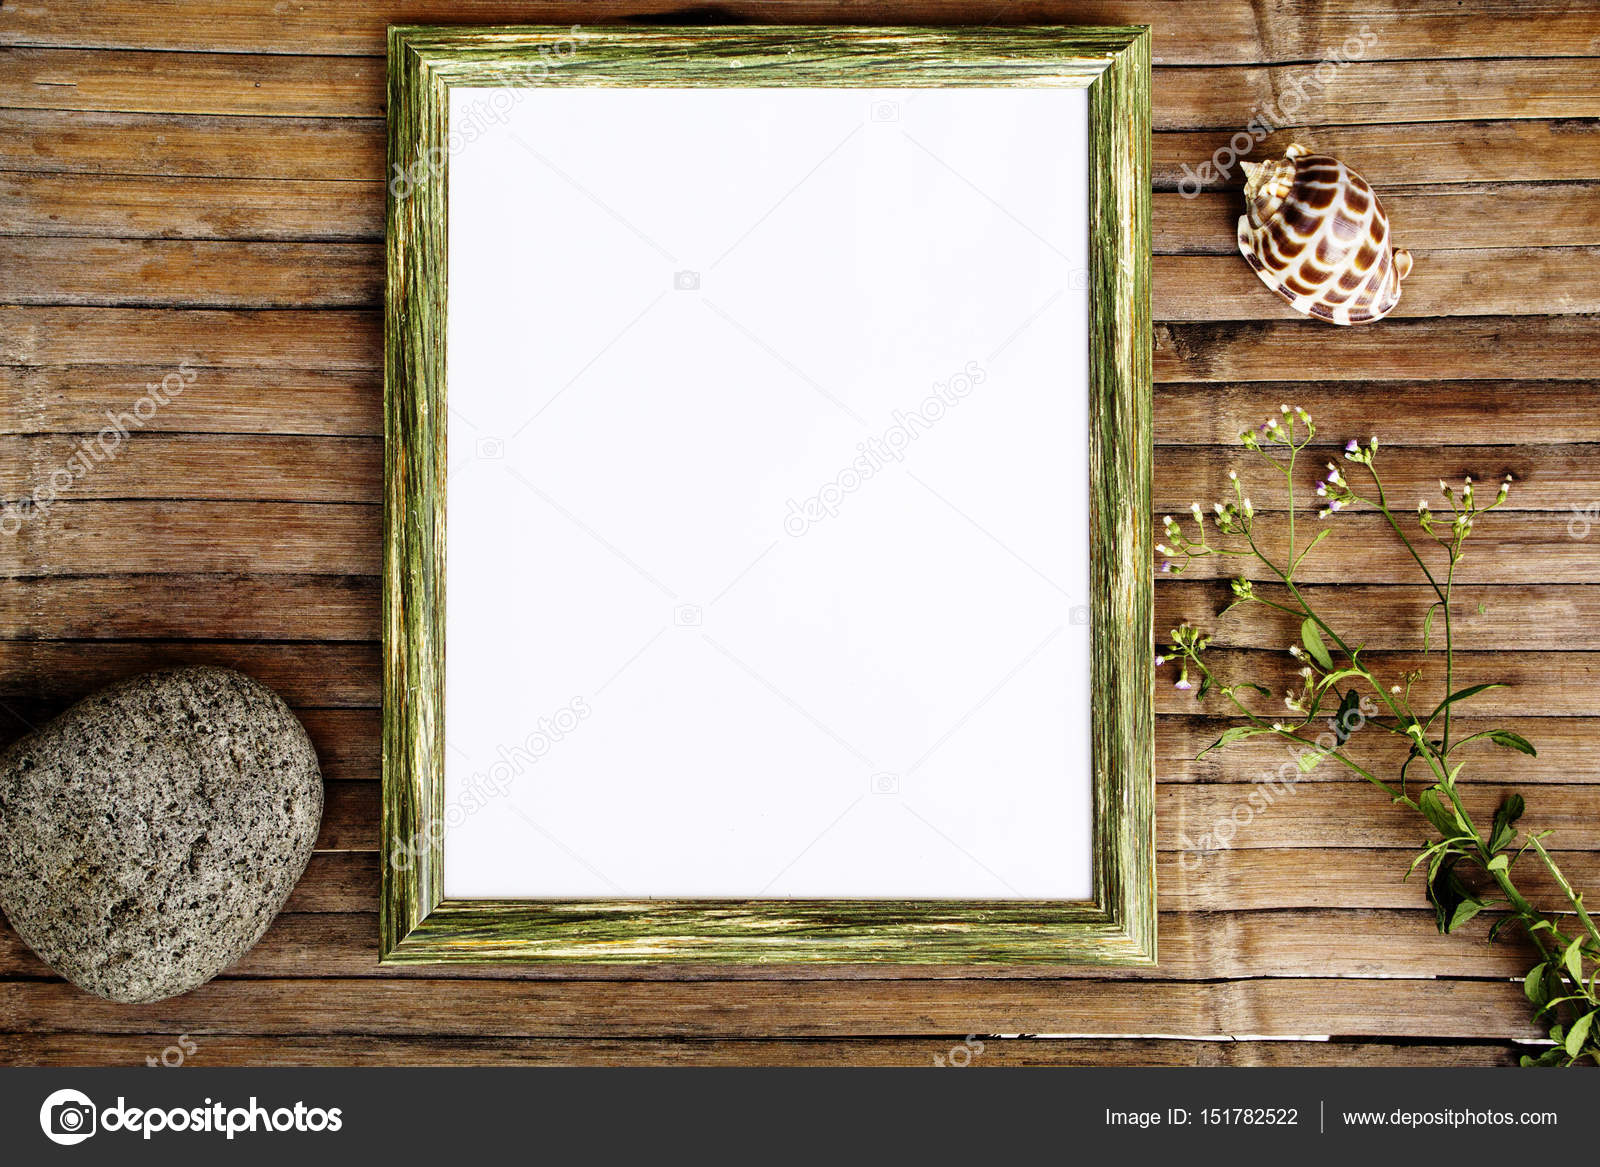 Blank page in vertical wooden frame photo background. Rustic wooden ...